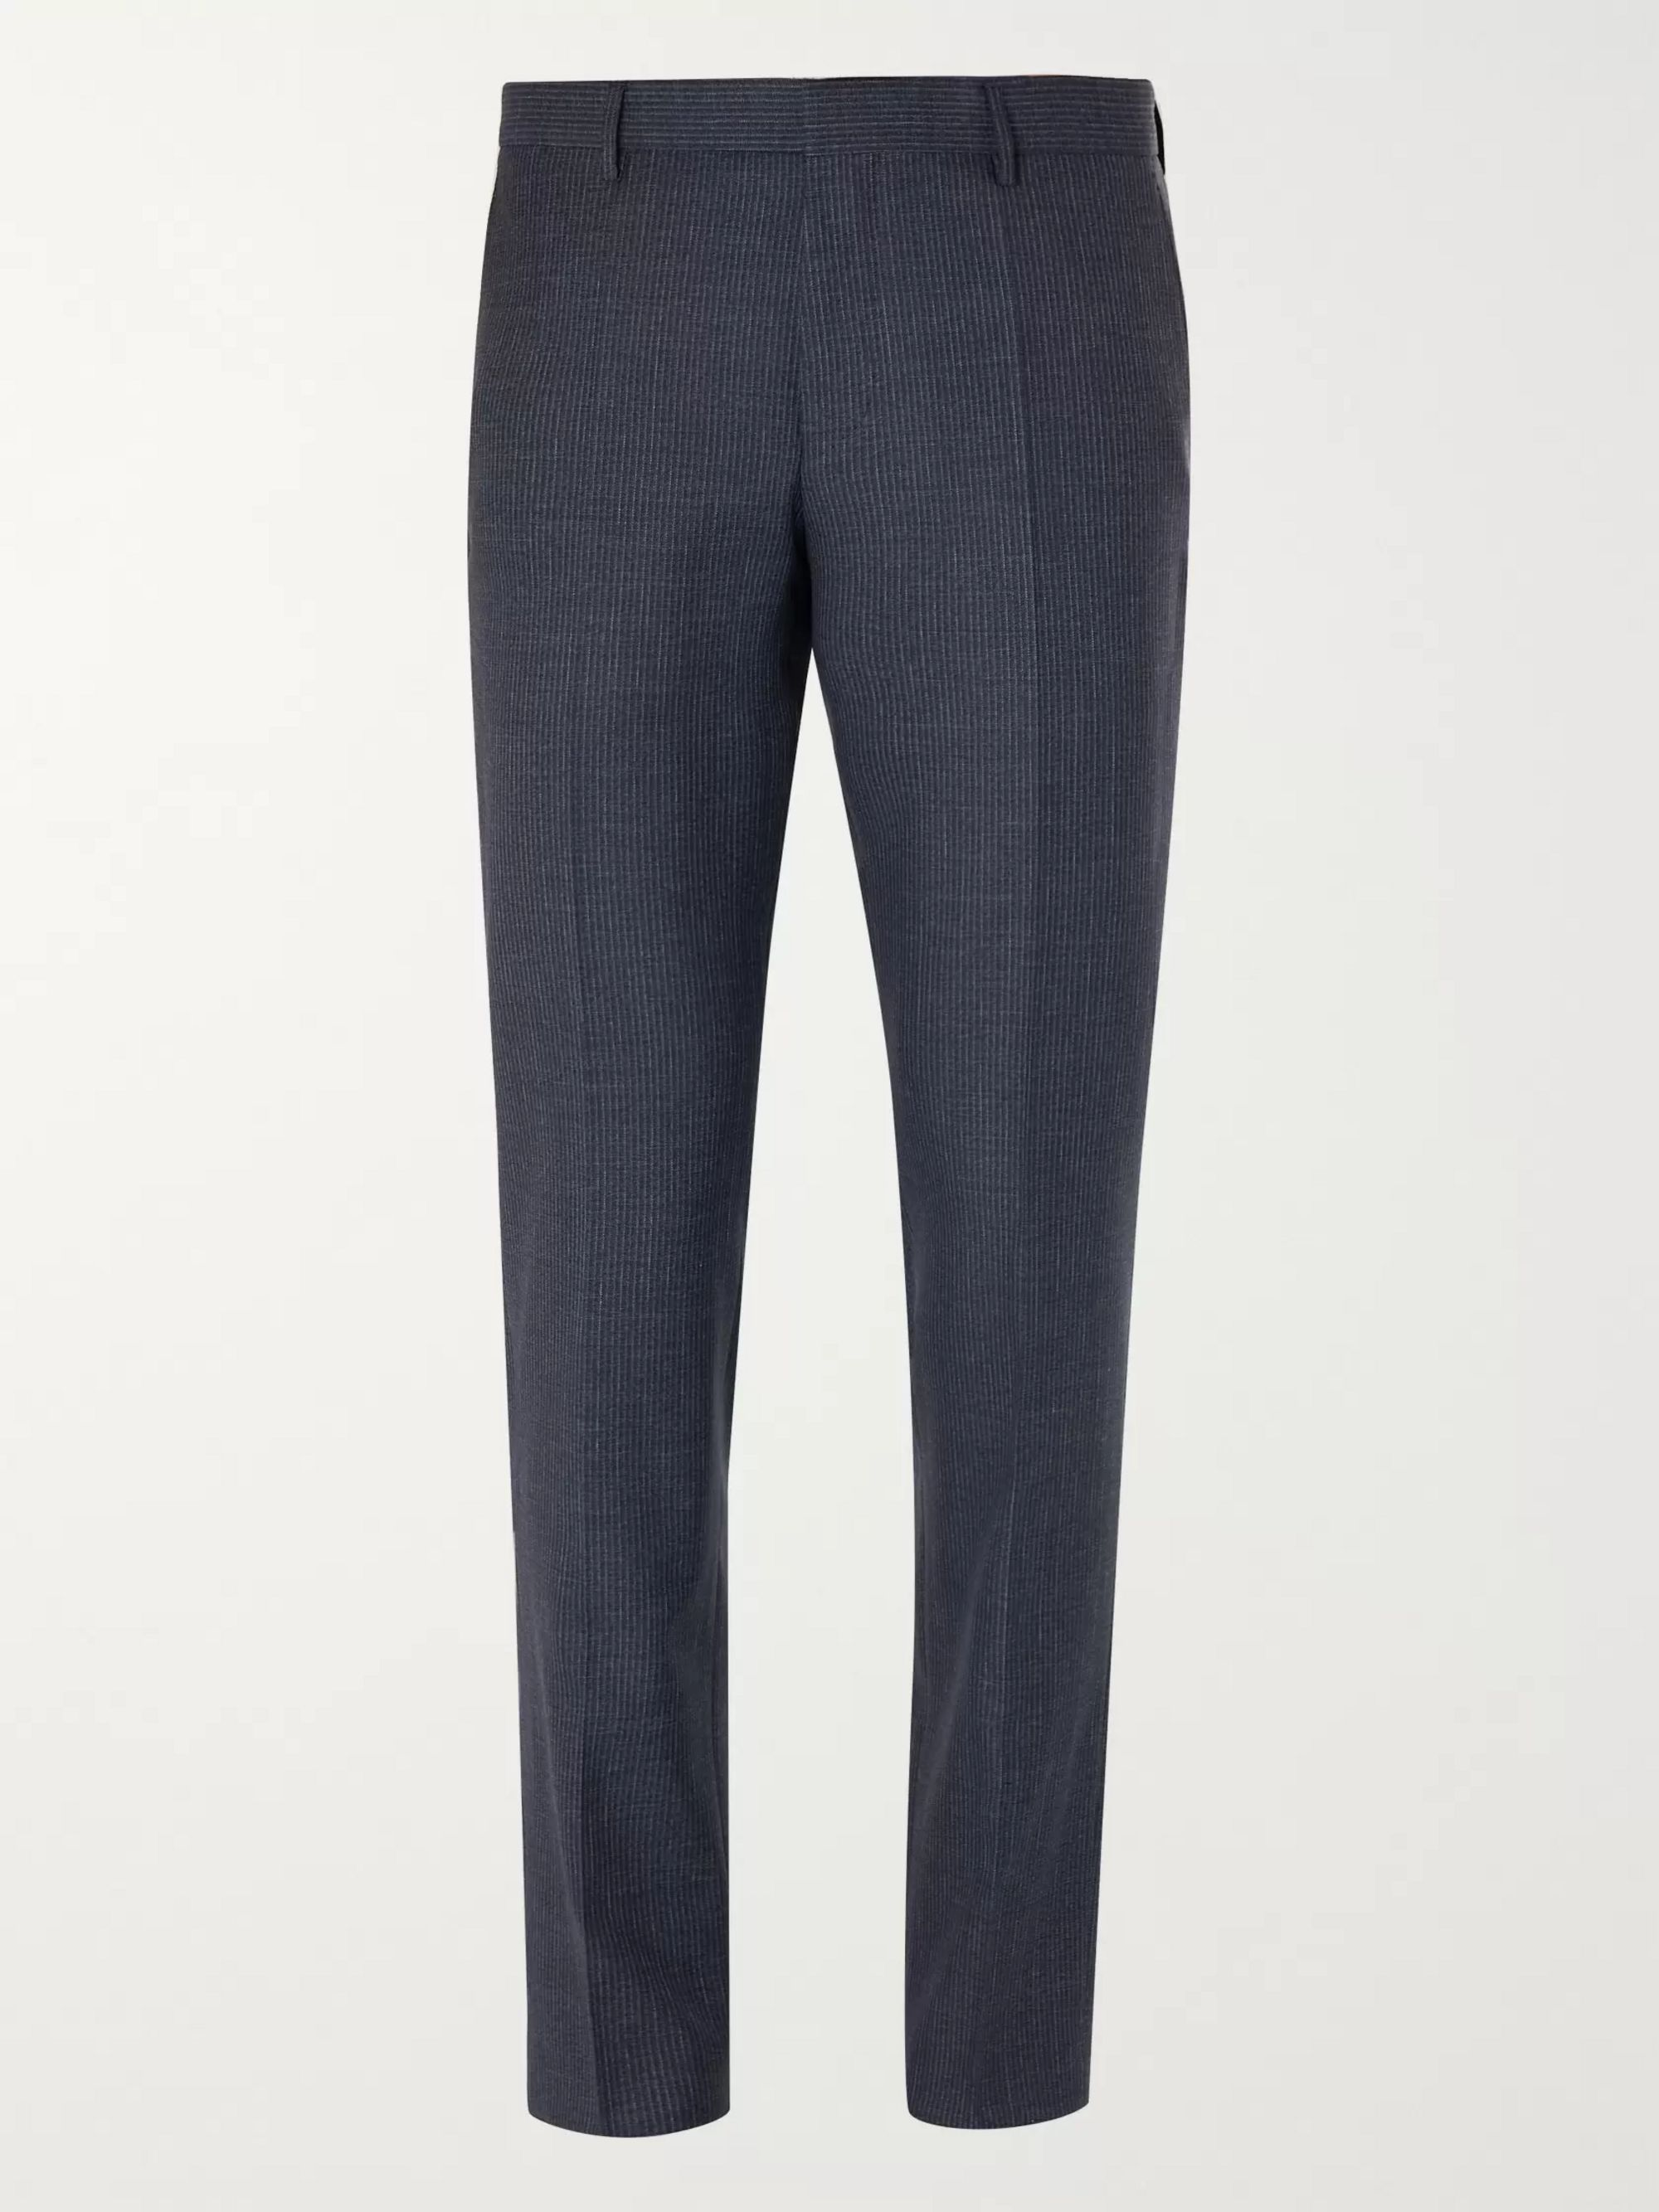 Hugo Boss Pinstriped Virgin Wool Suit Trousers